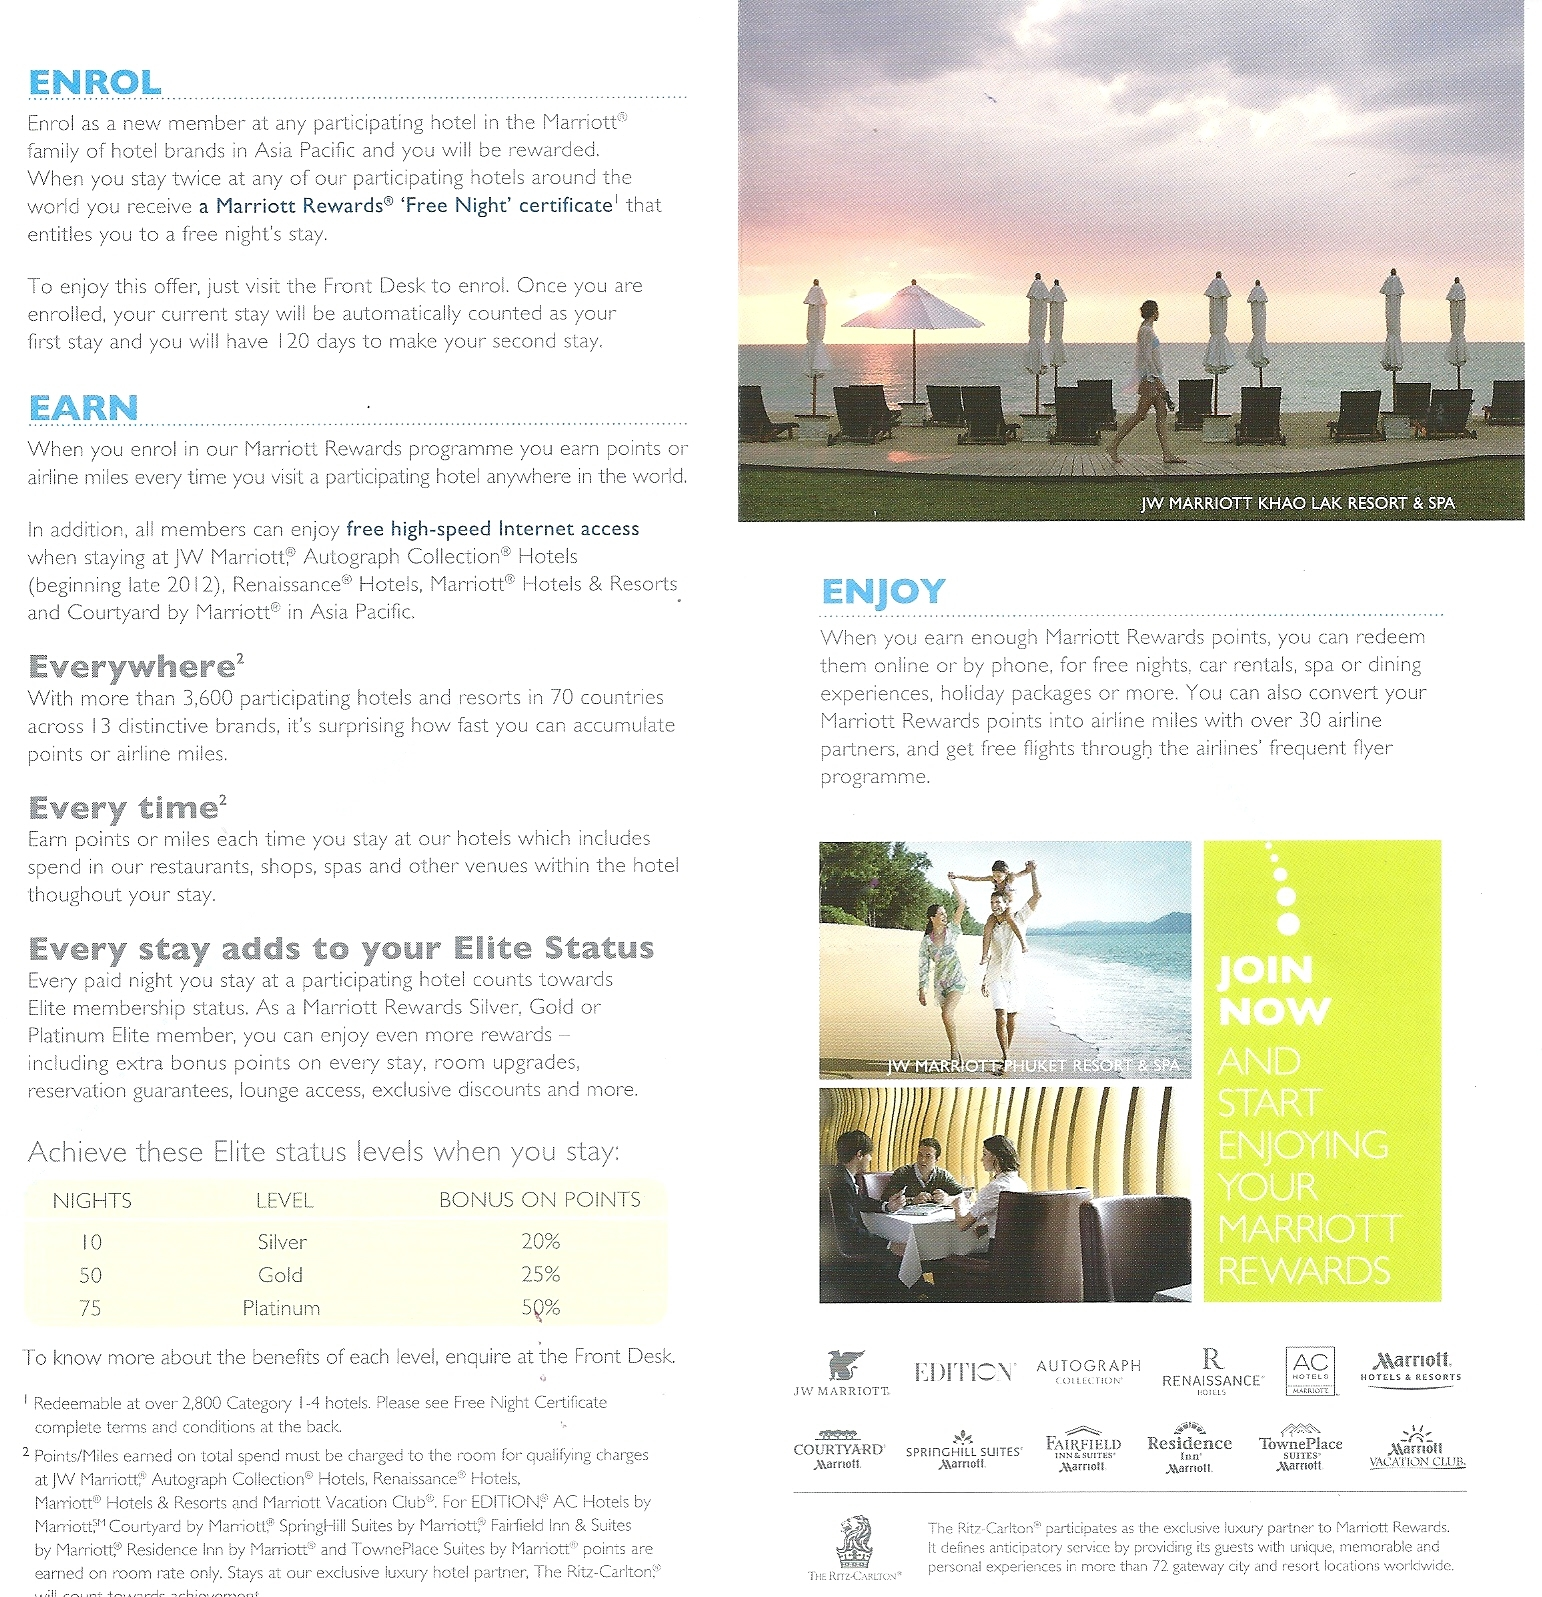 Marriott marriott rewards part 11 marriott rewards asia pacific joining offer text 1betcityfo Choice Image